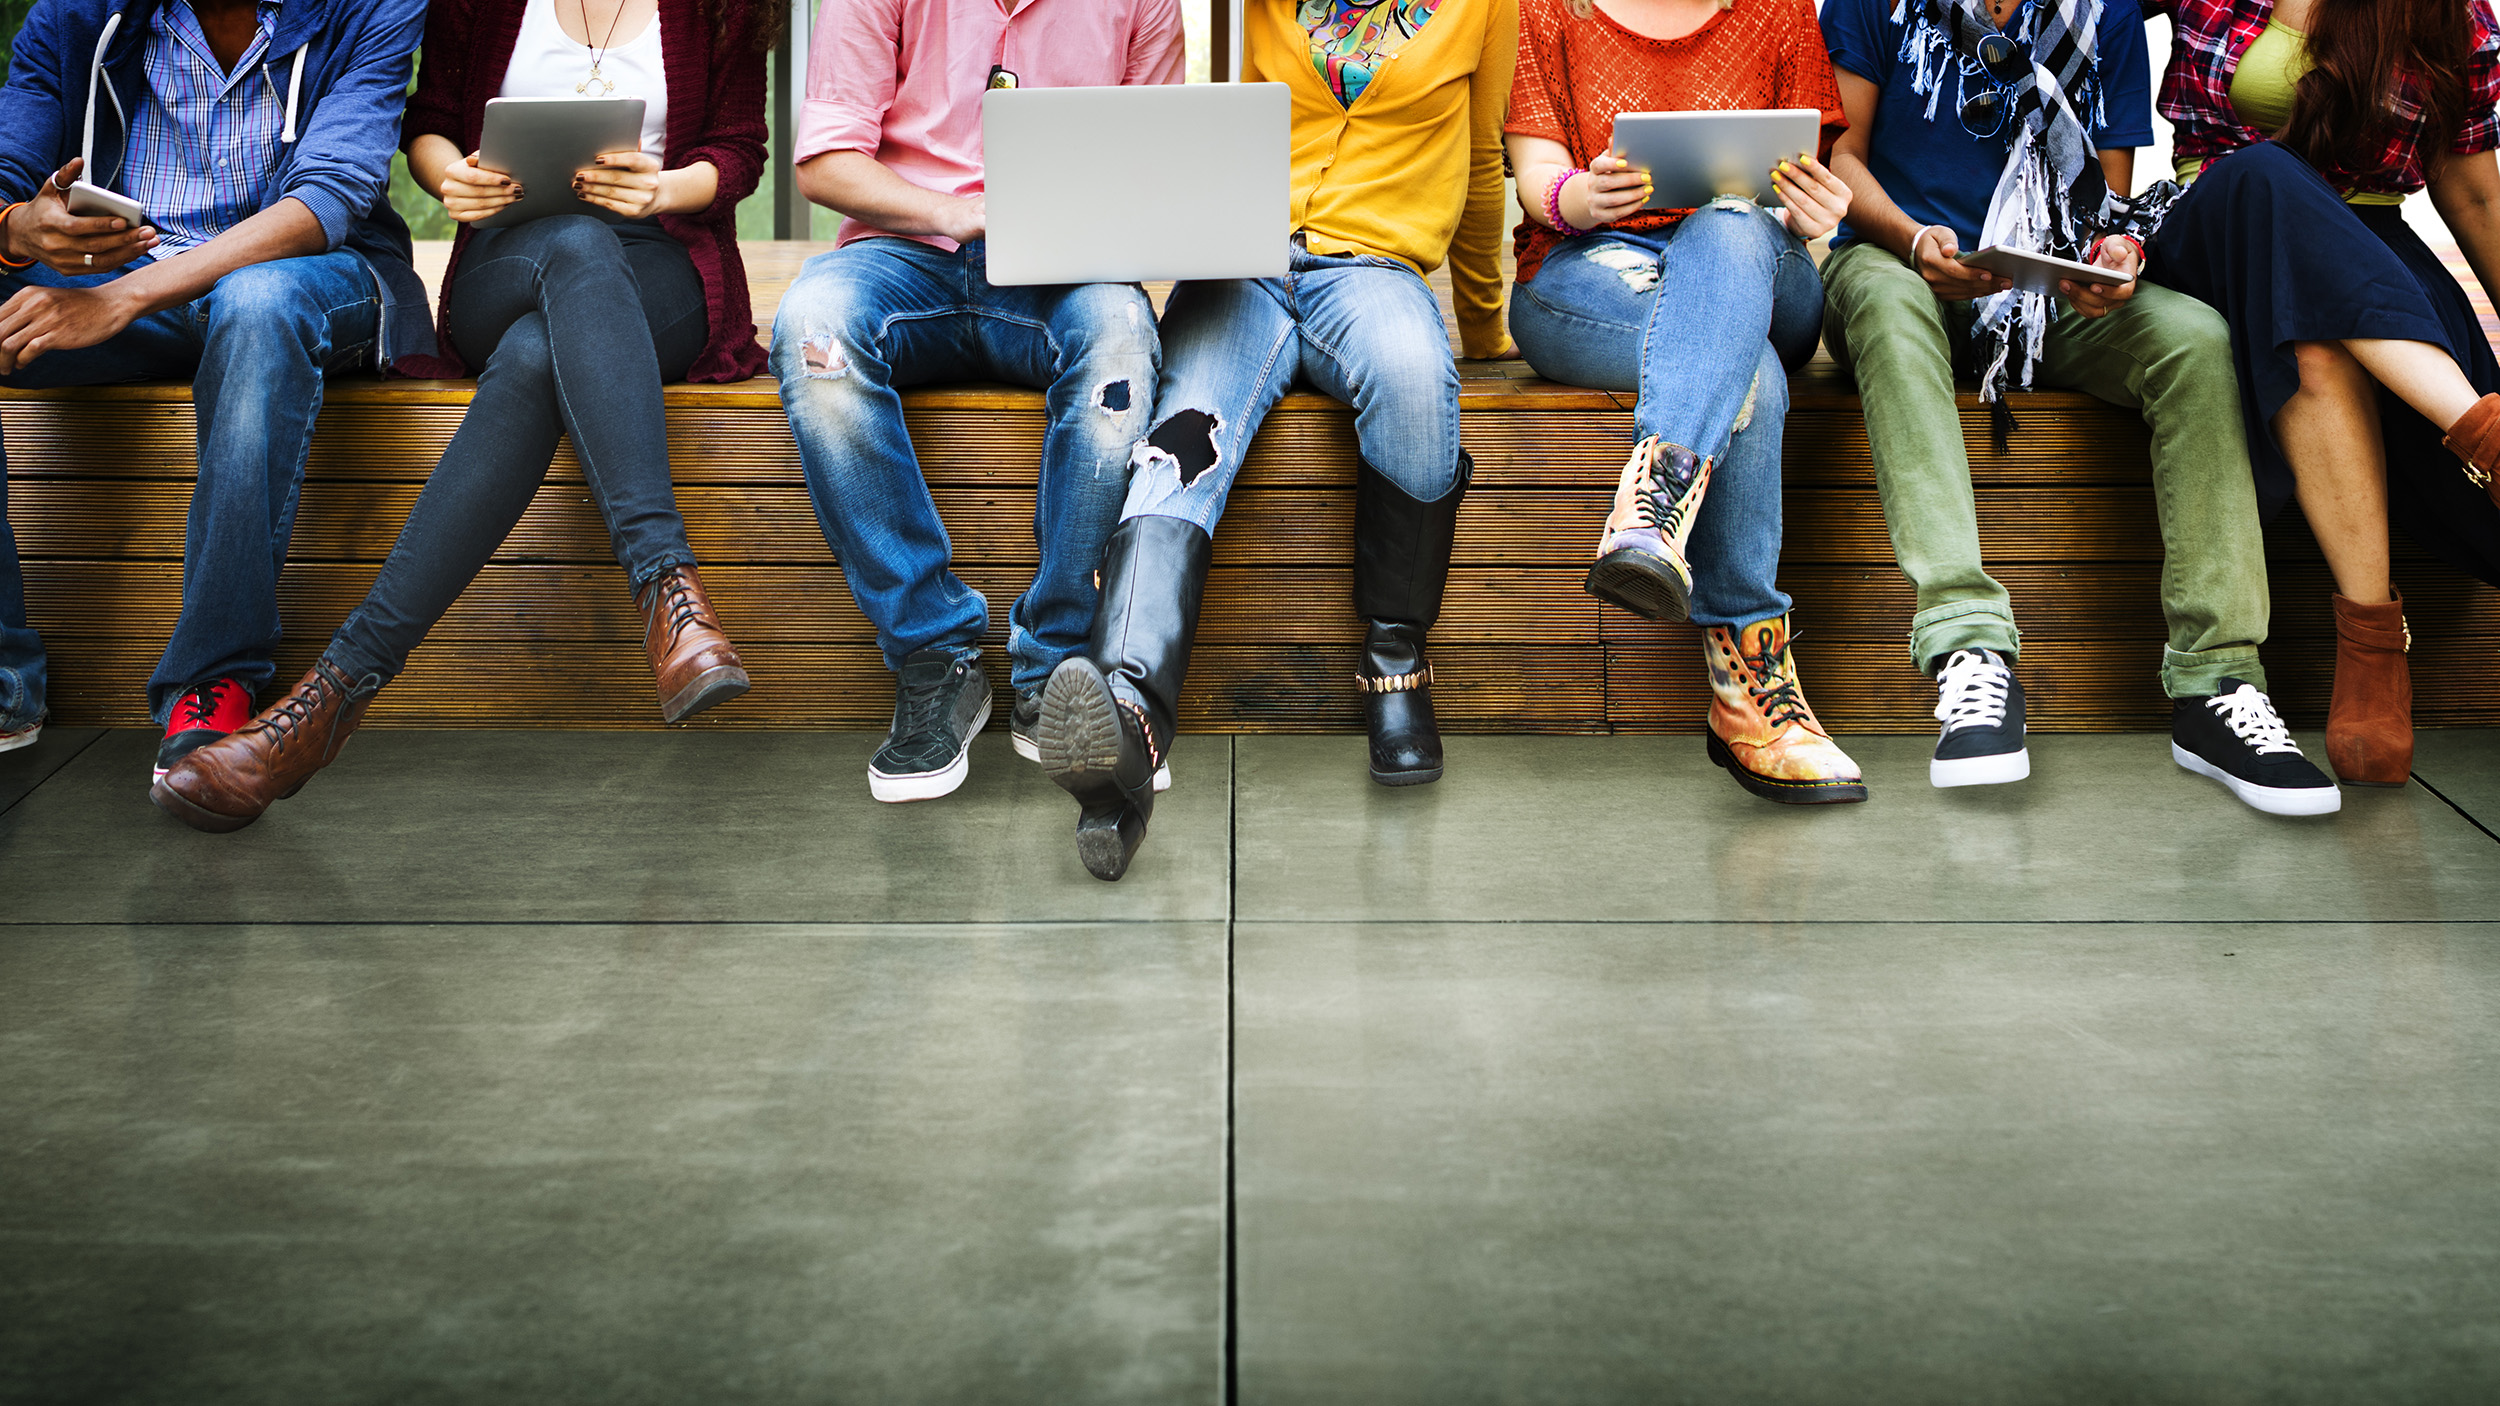 The 5G revolution: fixed wireless, broadband, and the home network